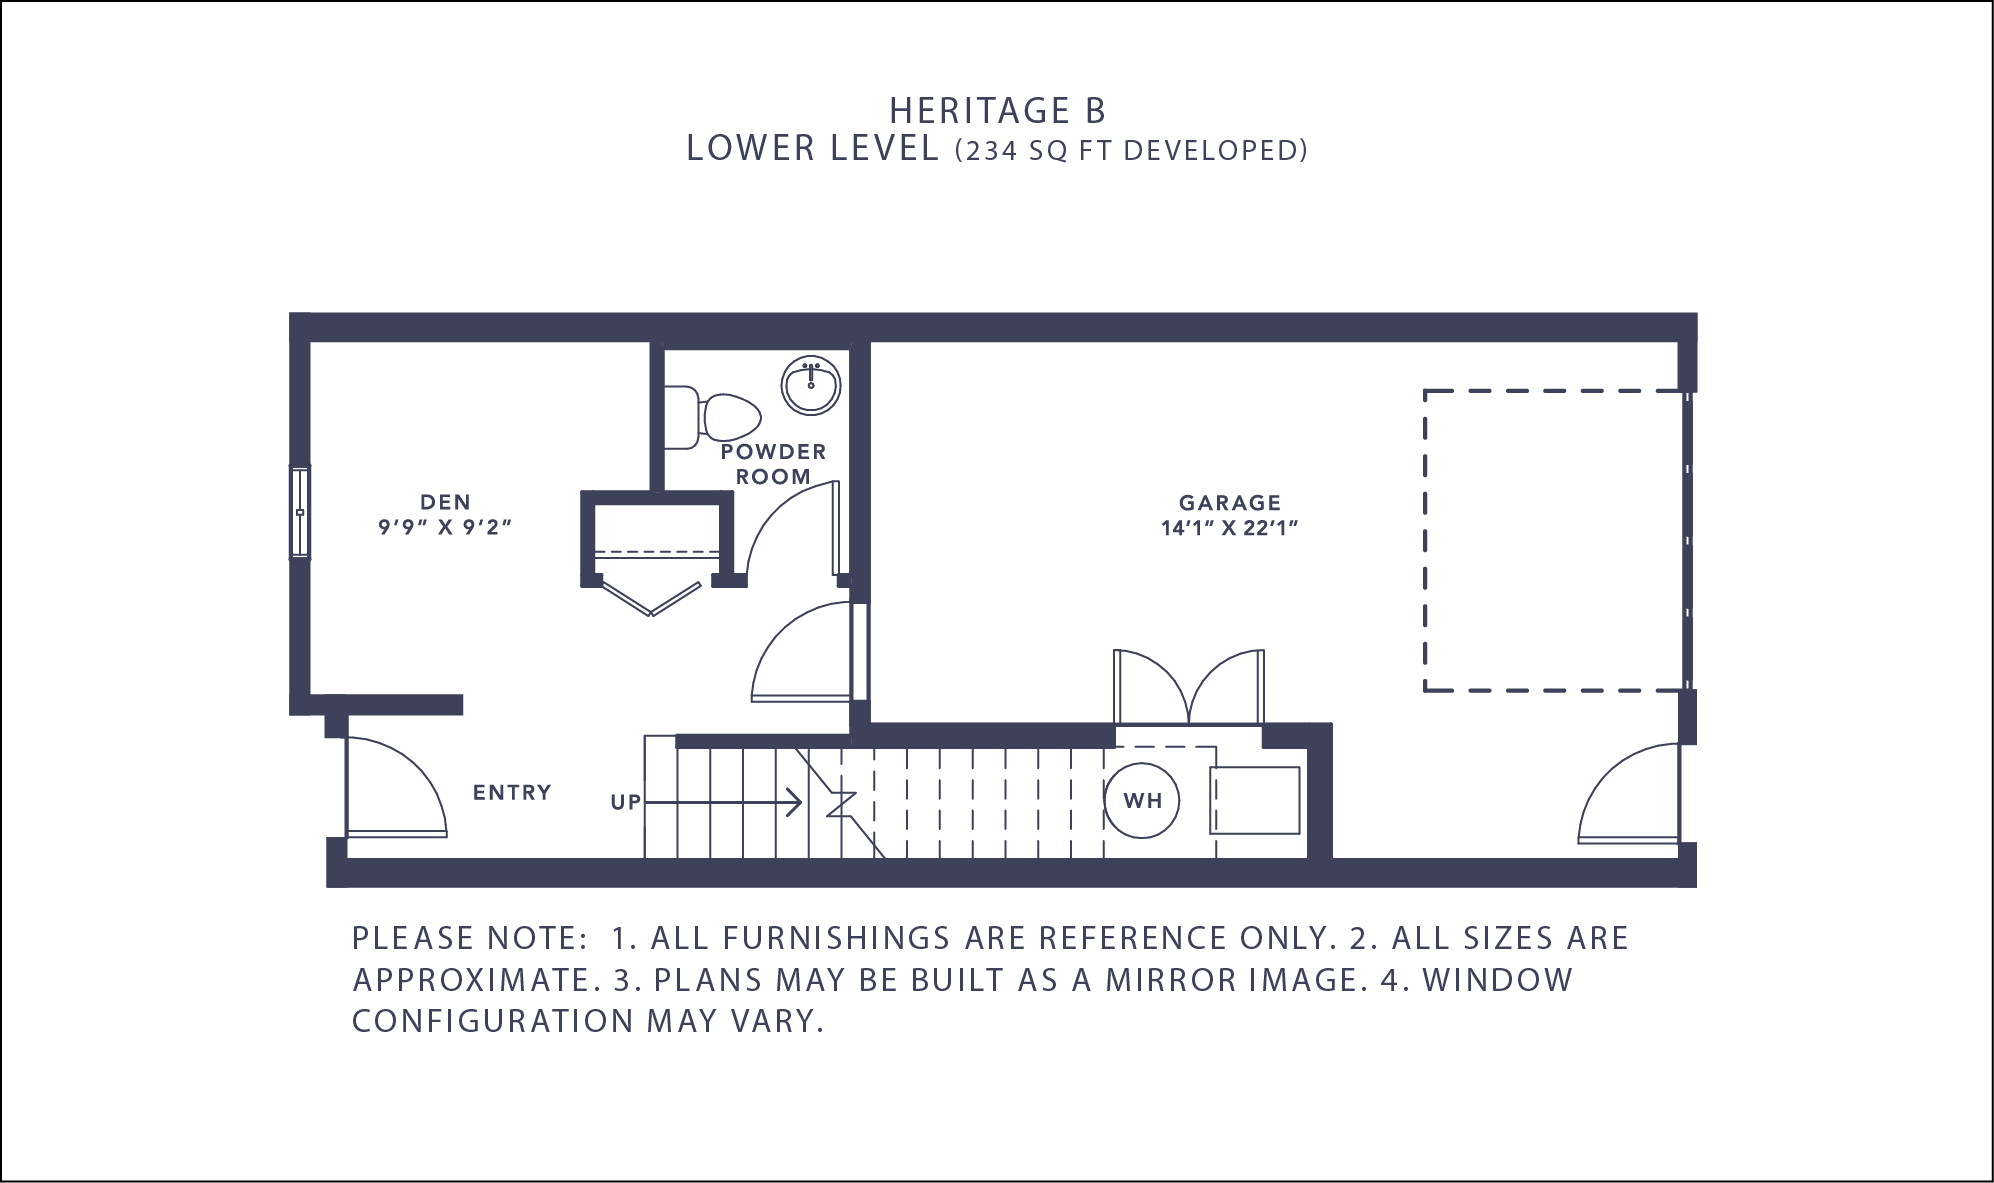 Heritage B Floorplan - Lower Level